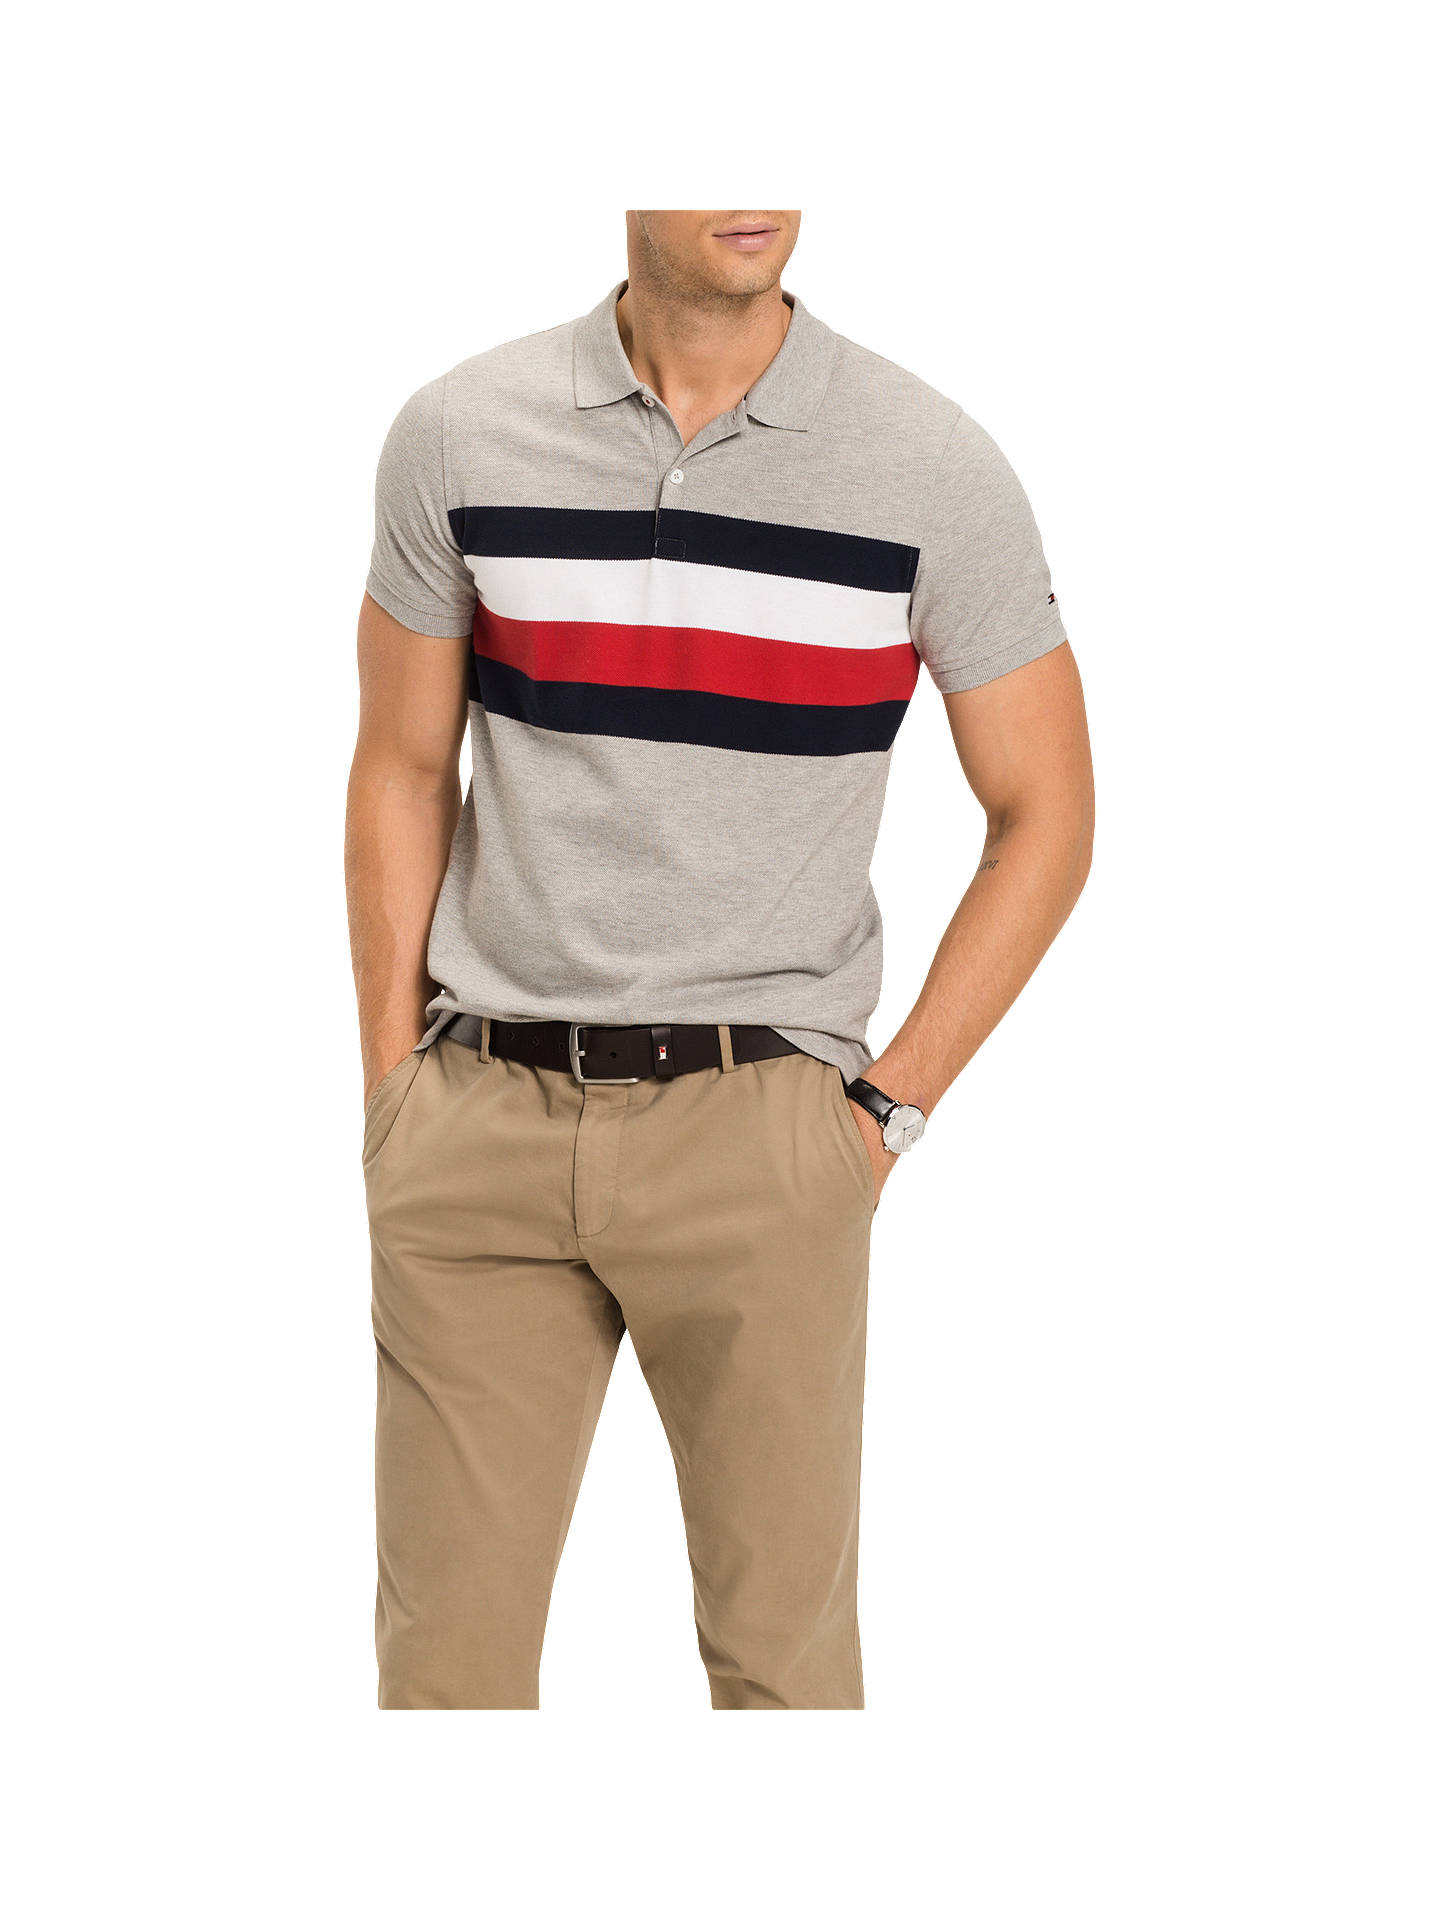 27e8d44f499ee5 Tommy Hilfiger Chest Stripe Polo Shirt at John Lewis   Partners